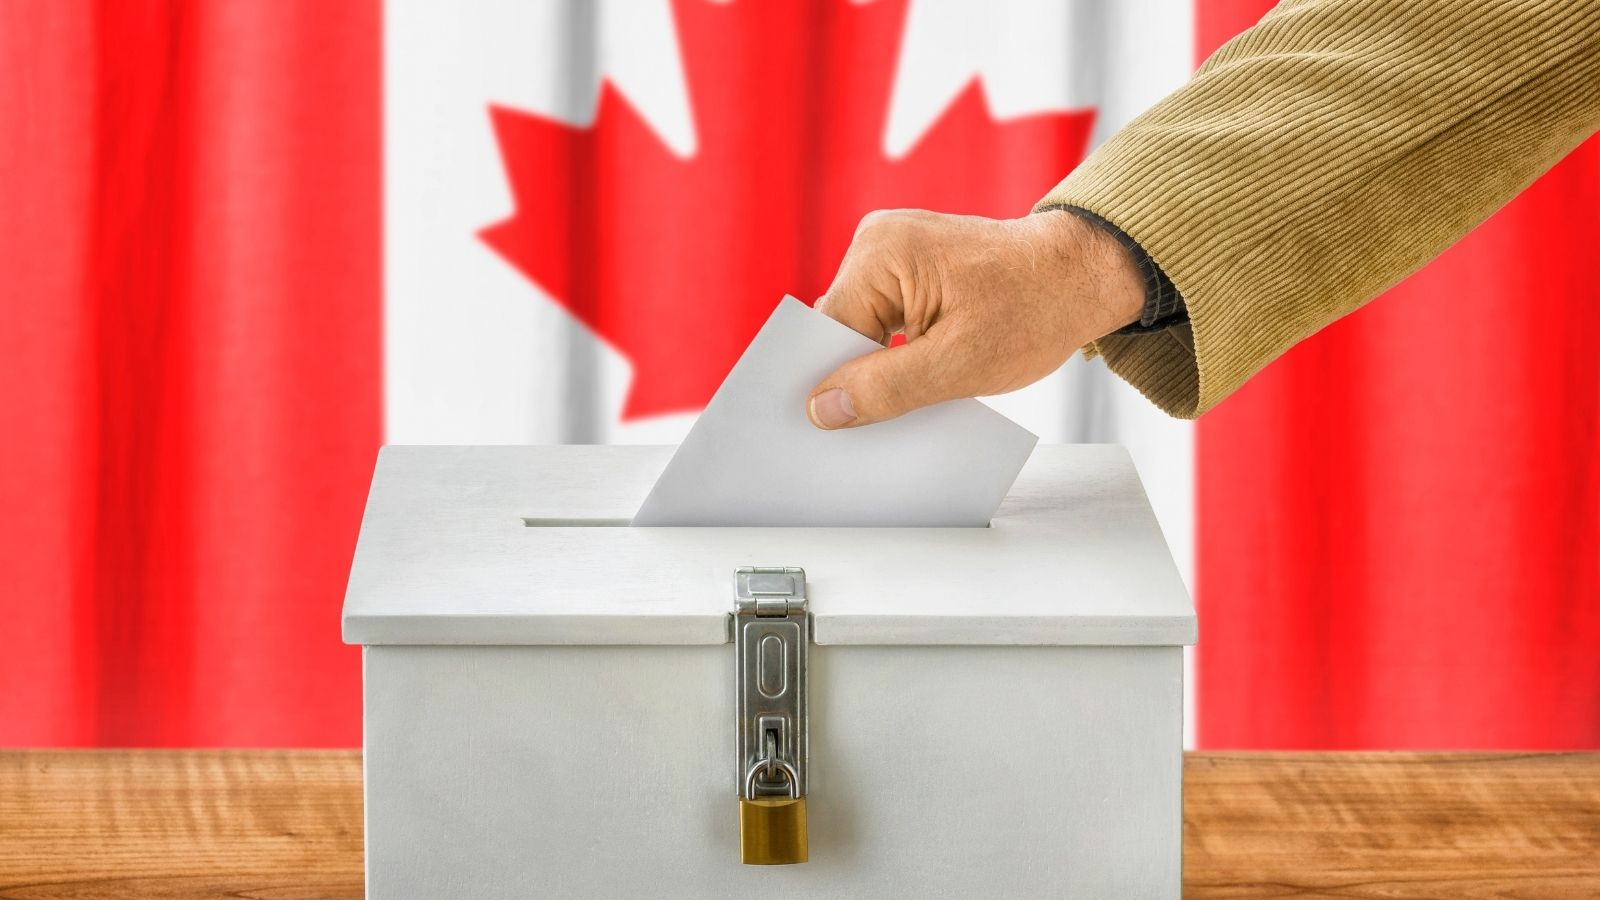 affordable housing and homelessness issues Canadian federal election